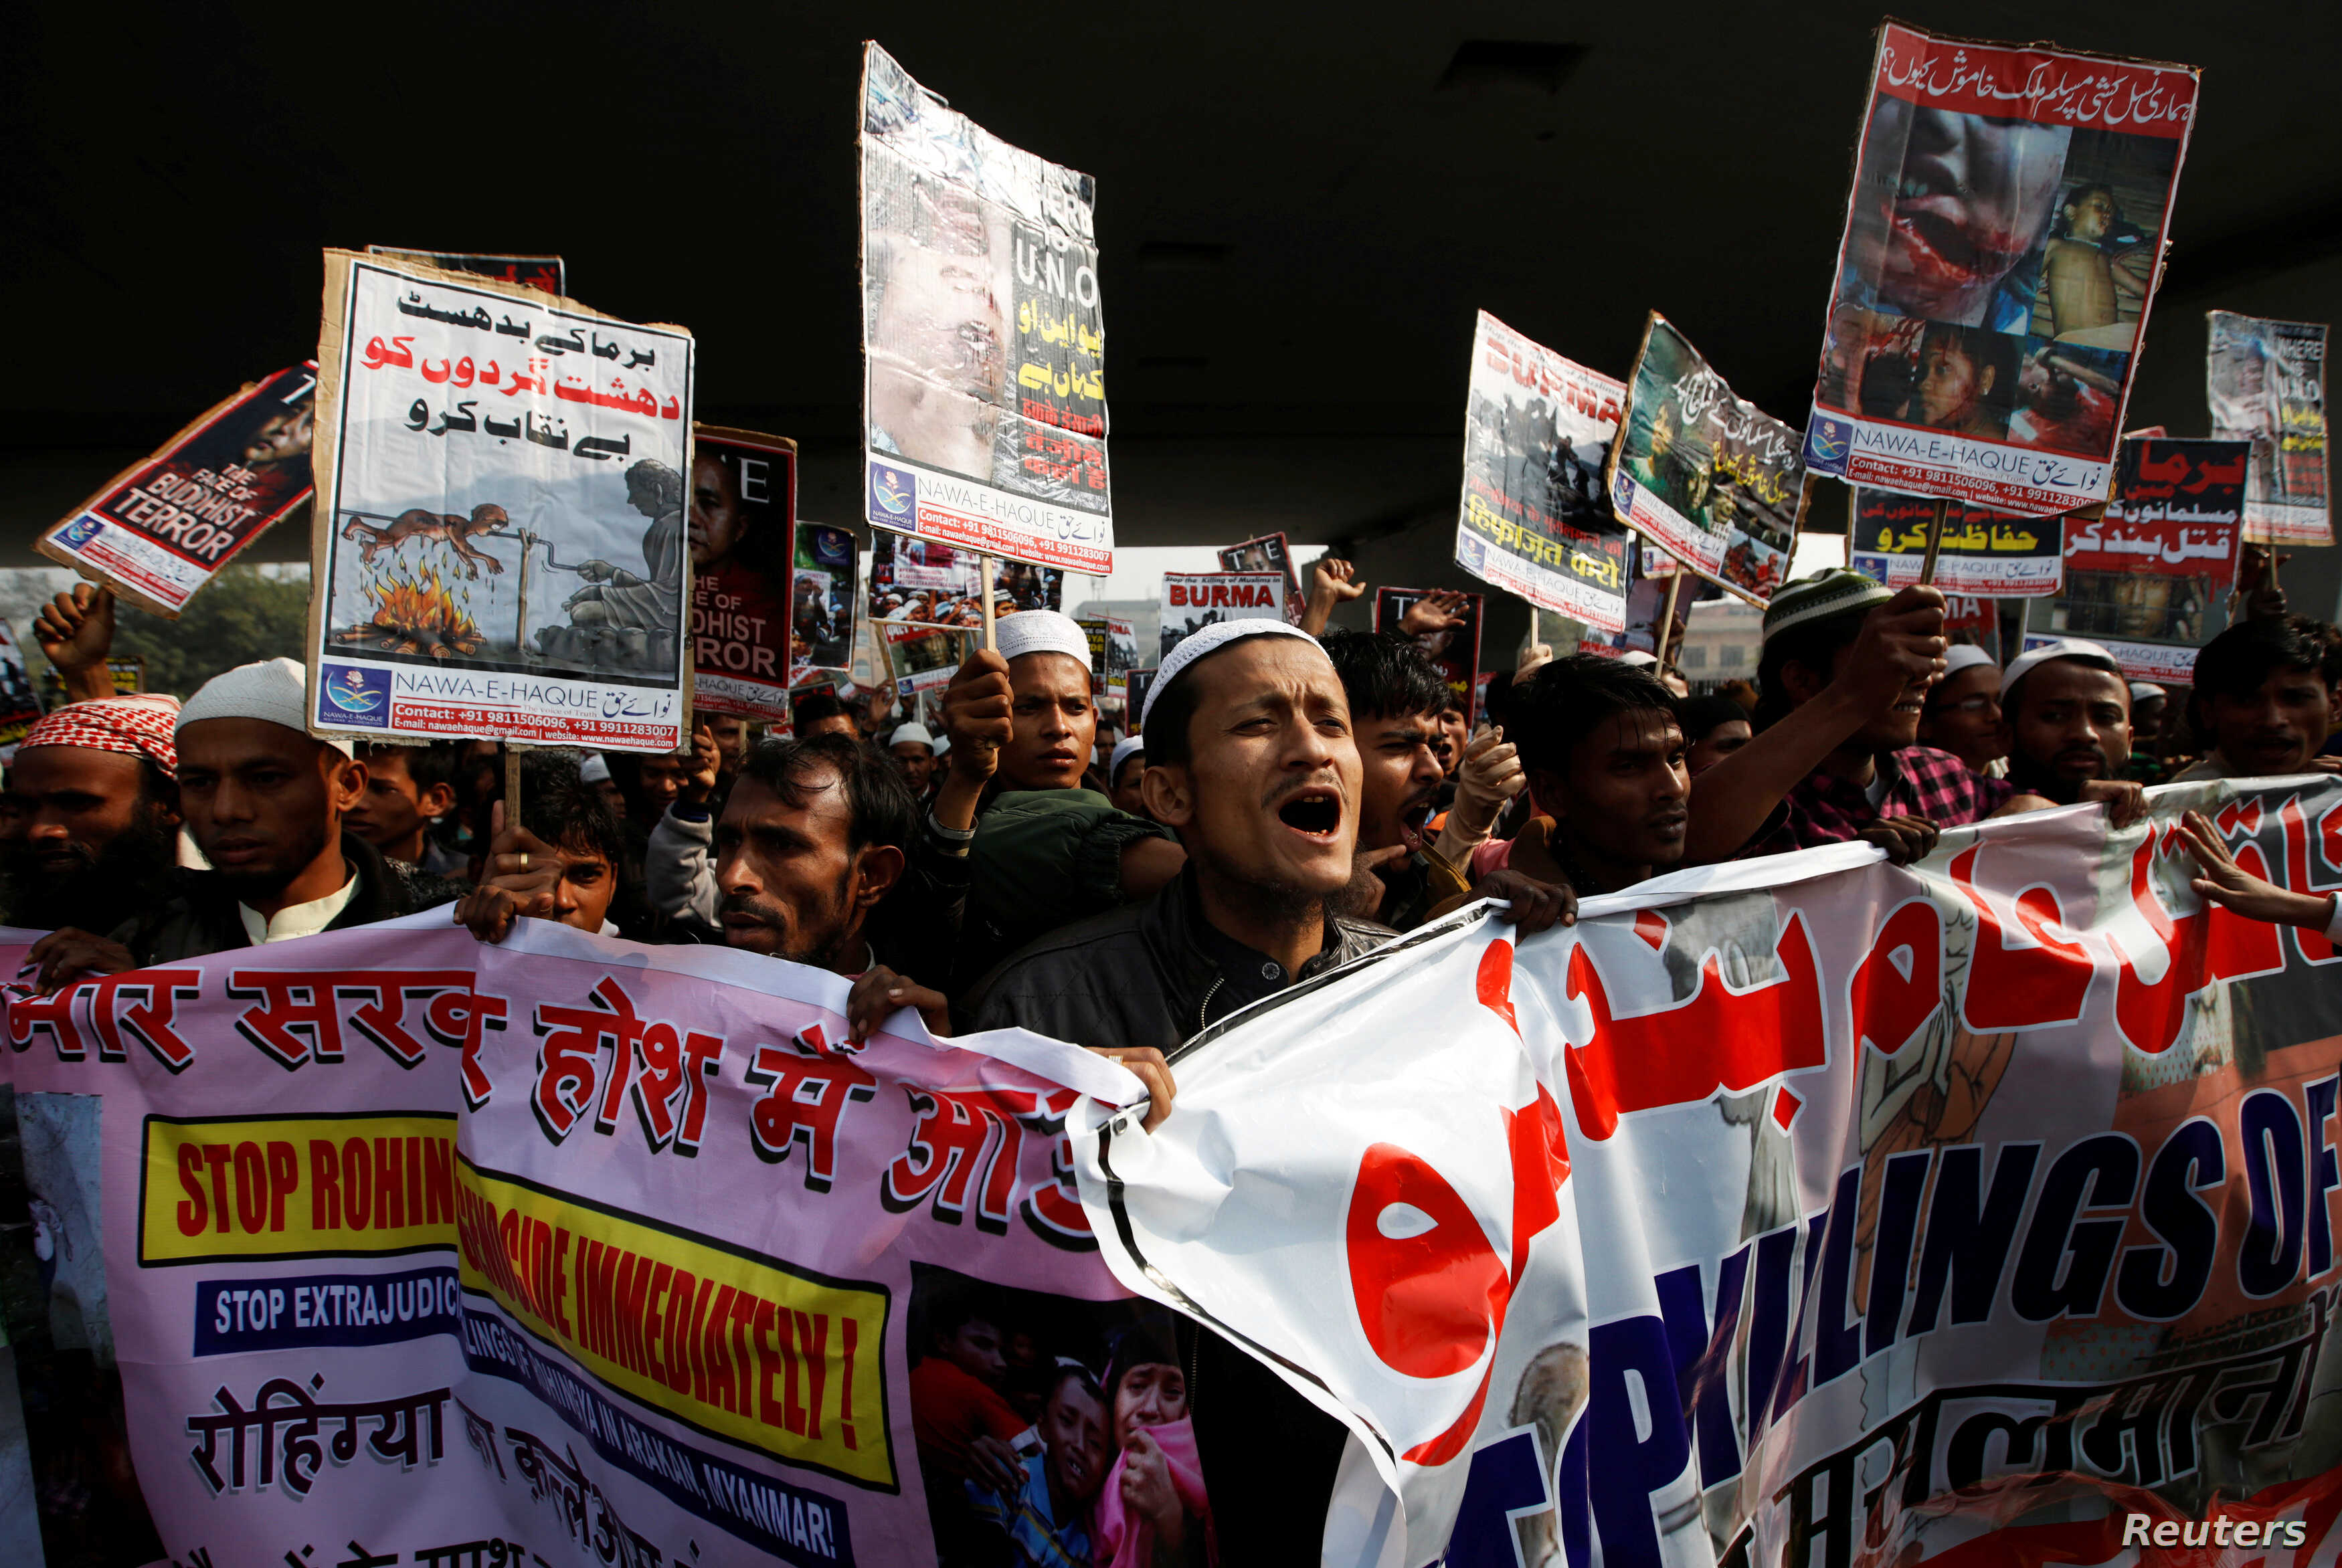 Rohingya Muslim refugees shout slogans during a protest against what organizers say is the crackdown on ethnic Rohingyas in Myanmar, in New Delhi, India, Dec. 19, 2016.